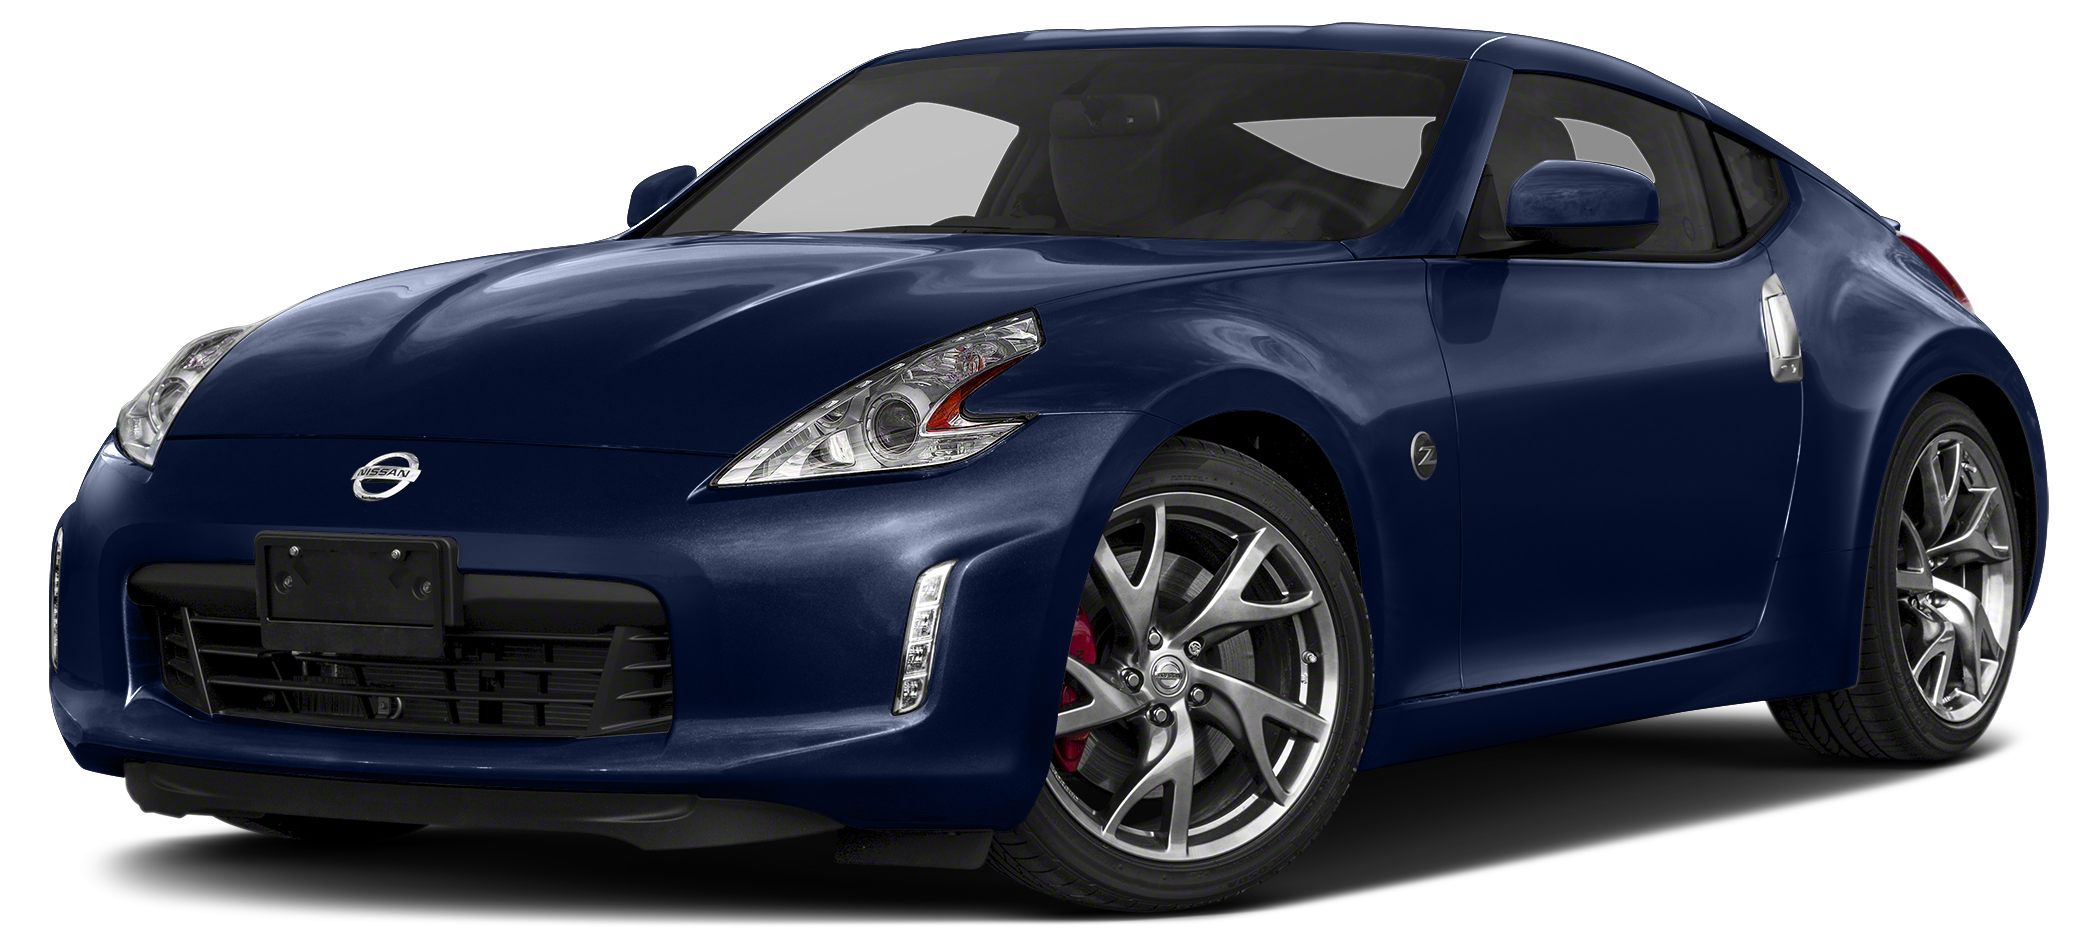 2017 Nissan 370Z Touring Featuring a sleek and sporty exterior the Nissan 370Z comes available as